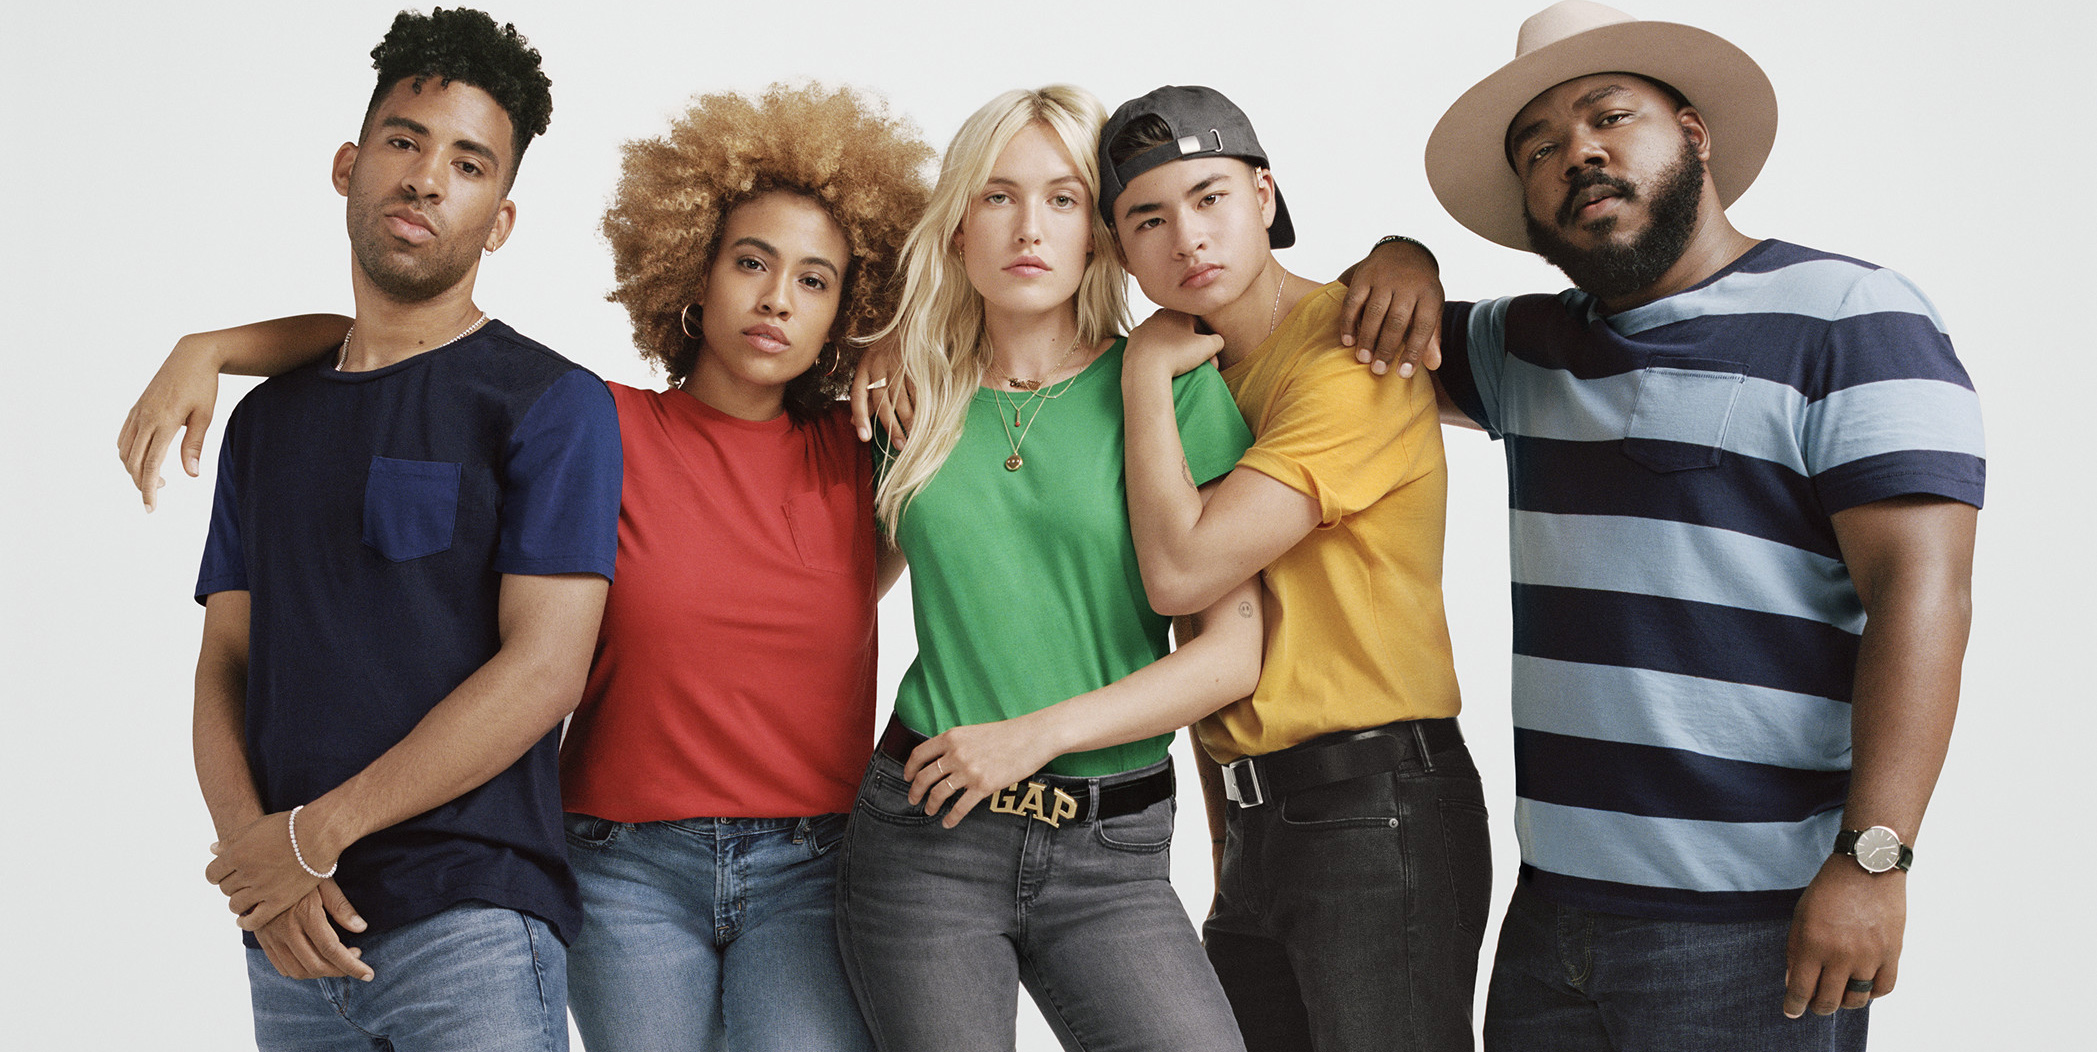 Gap - Good Creates Good Fall 2018 Ad Campaign with Kyle